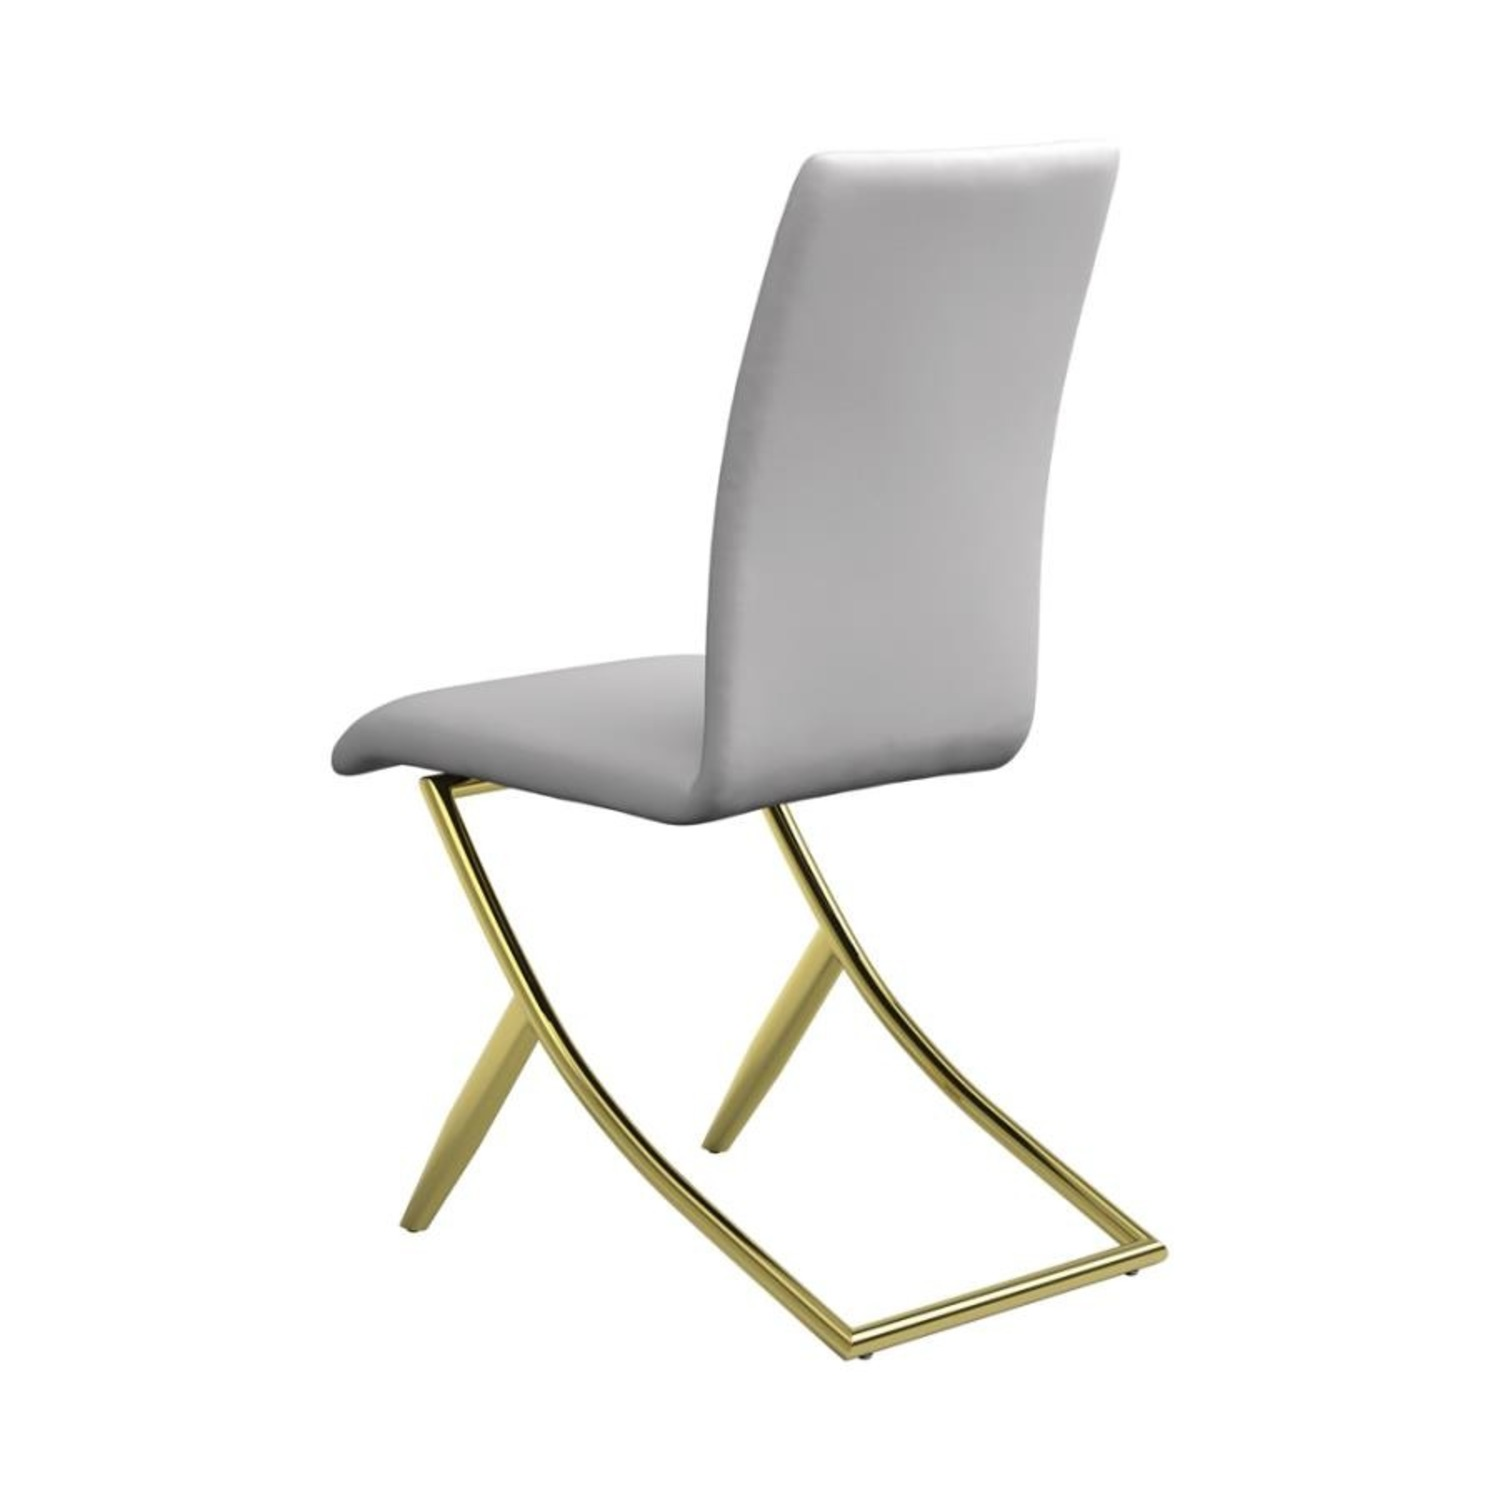 Side Chair In White W/ Crisscross Base Design - image-2